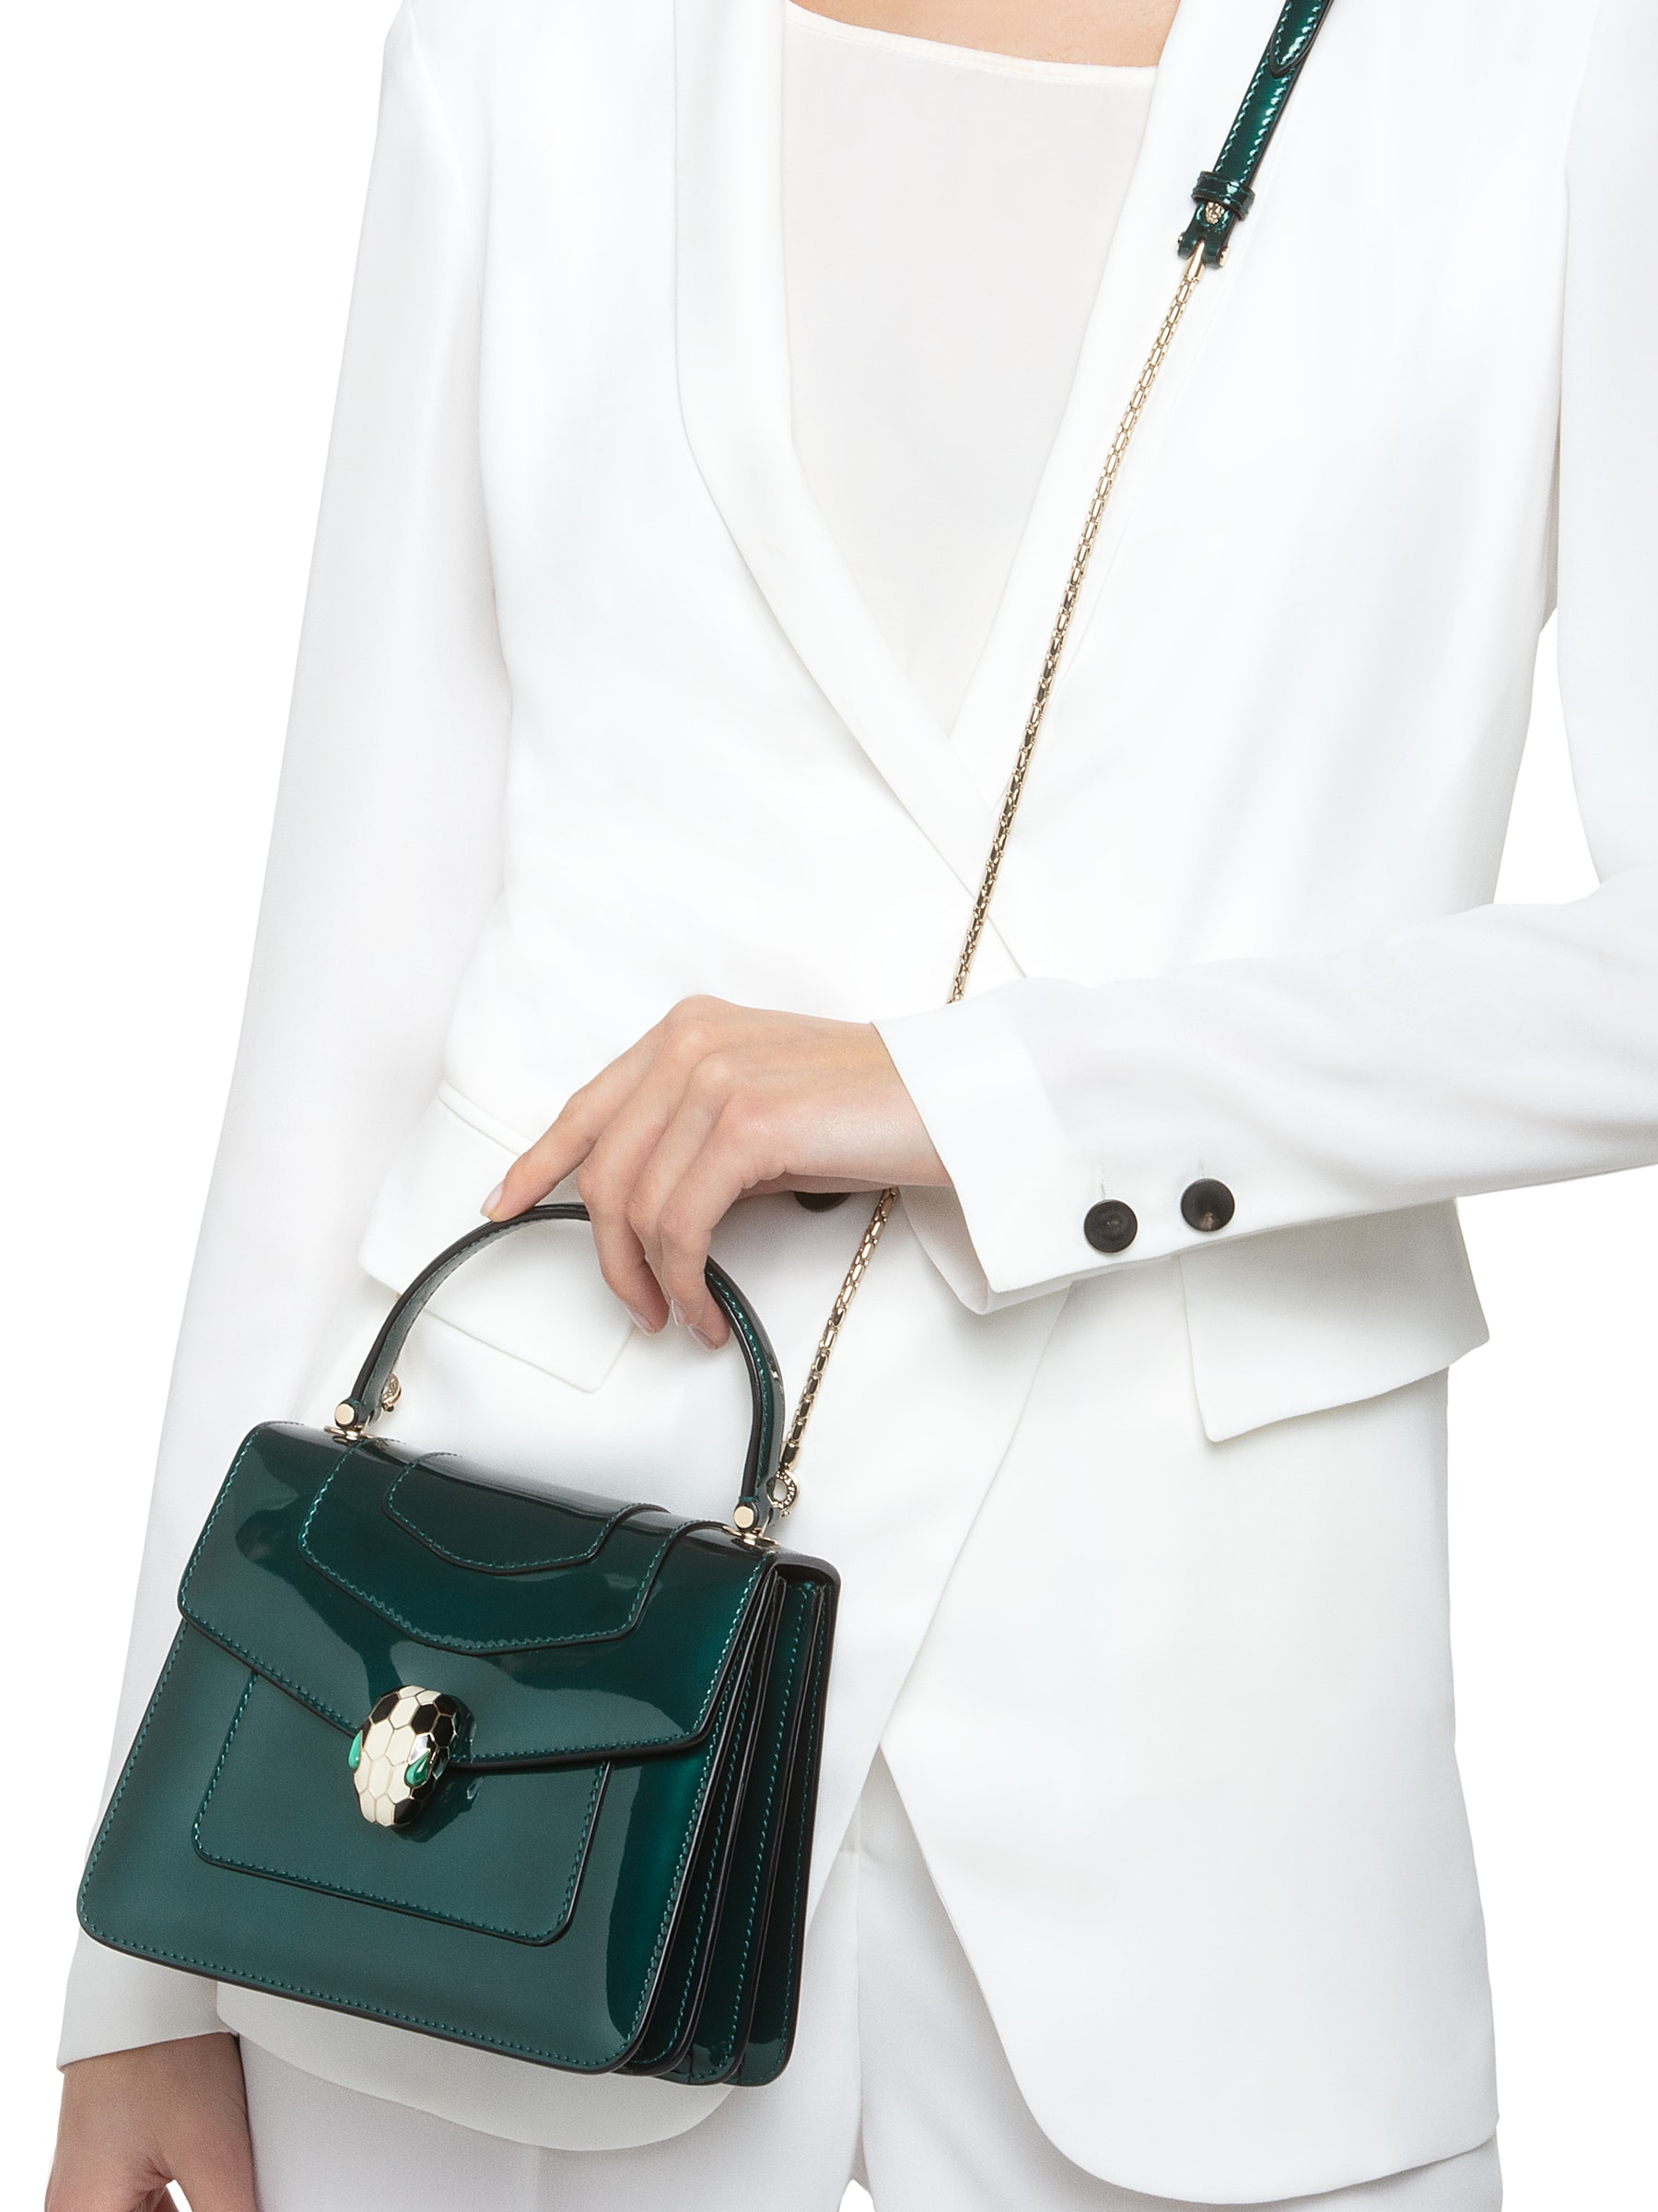 Flap cover bag Serpenti Forever in forest emerald brushed metallic calf leather. Brass light gold plated hardware and snake head closure in black and white enamel with eyes in green malachite. 752-BMCLb image 3